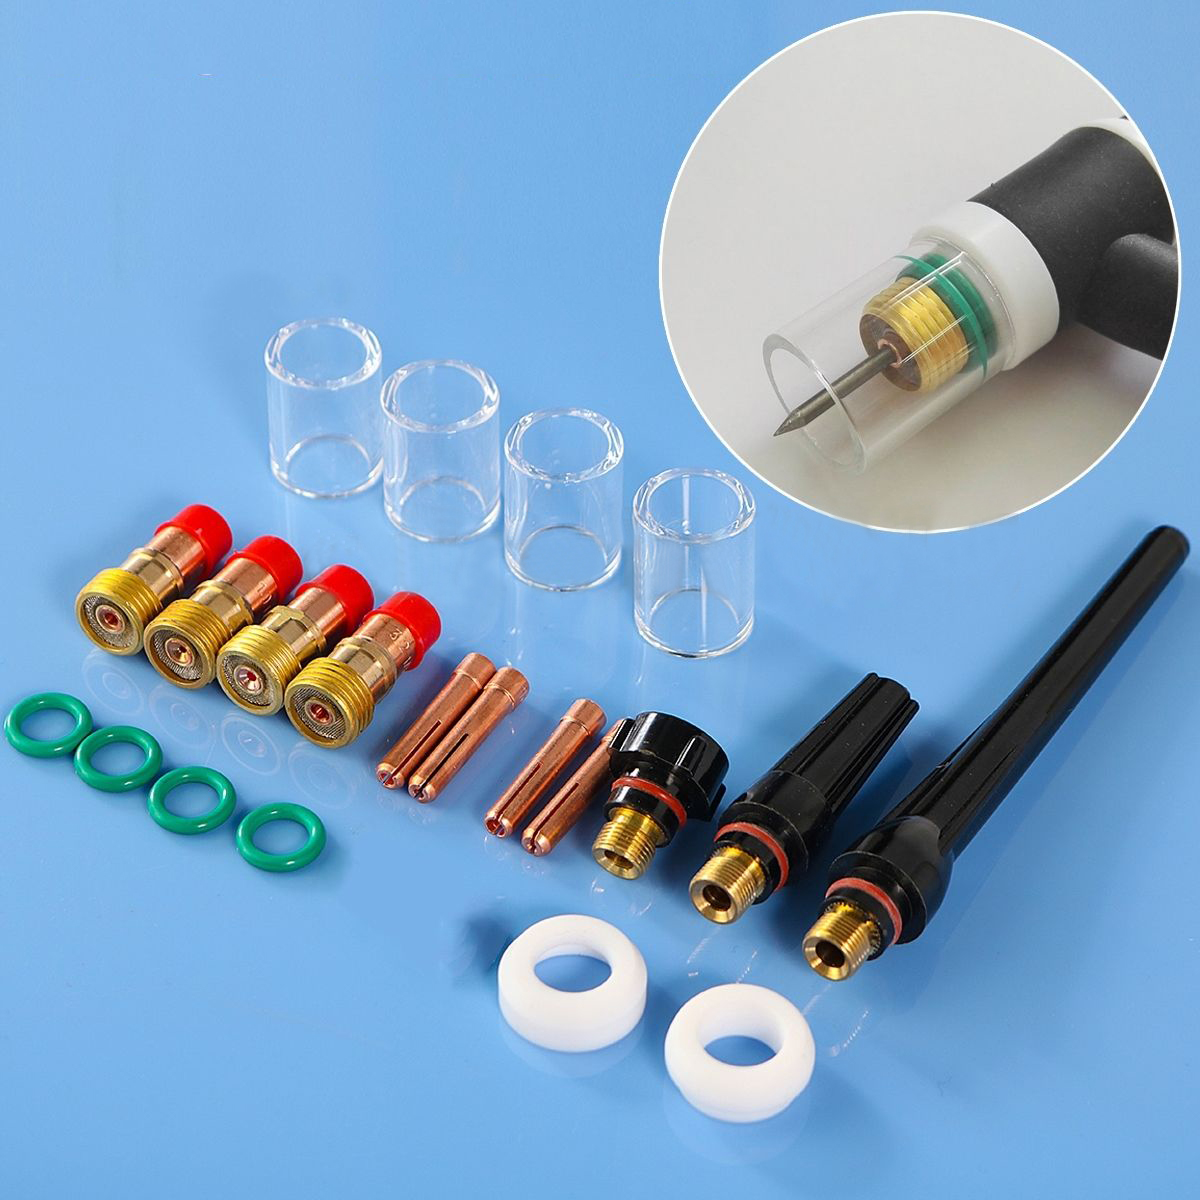 21pcs Mayitr TIG Welding Torch Kit Sollets Body Stubby Gas Lens #10 Pyrex Cup for WP-17/18/26 Torch Consumables Accessories 2015 sale gas burner wp 17v sr 17v tig welding torch complete 20feet 6meter soldering iron gas valve control air cooled 150amp